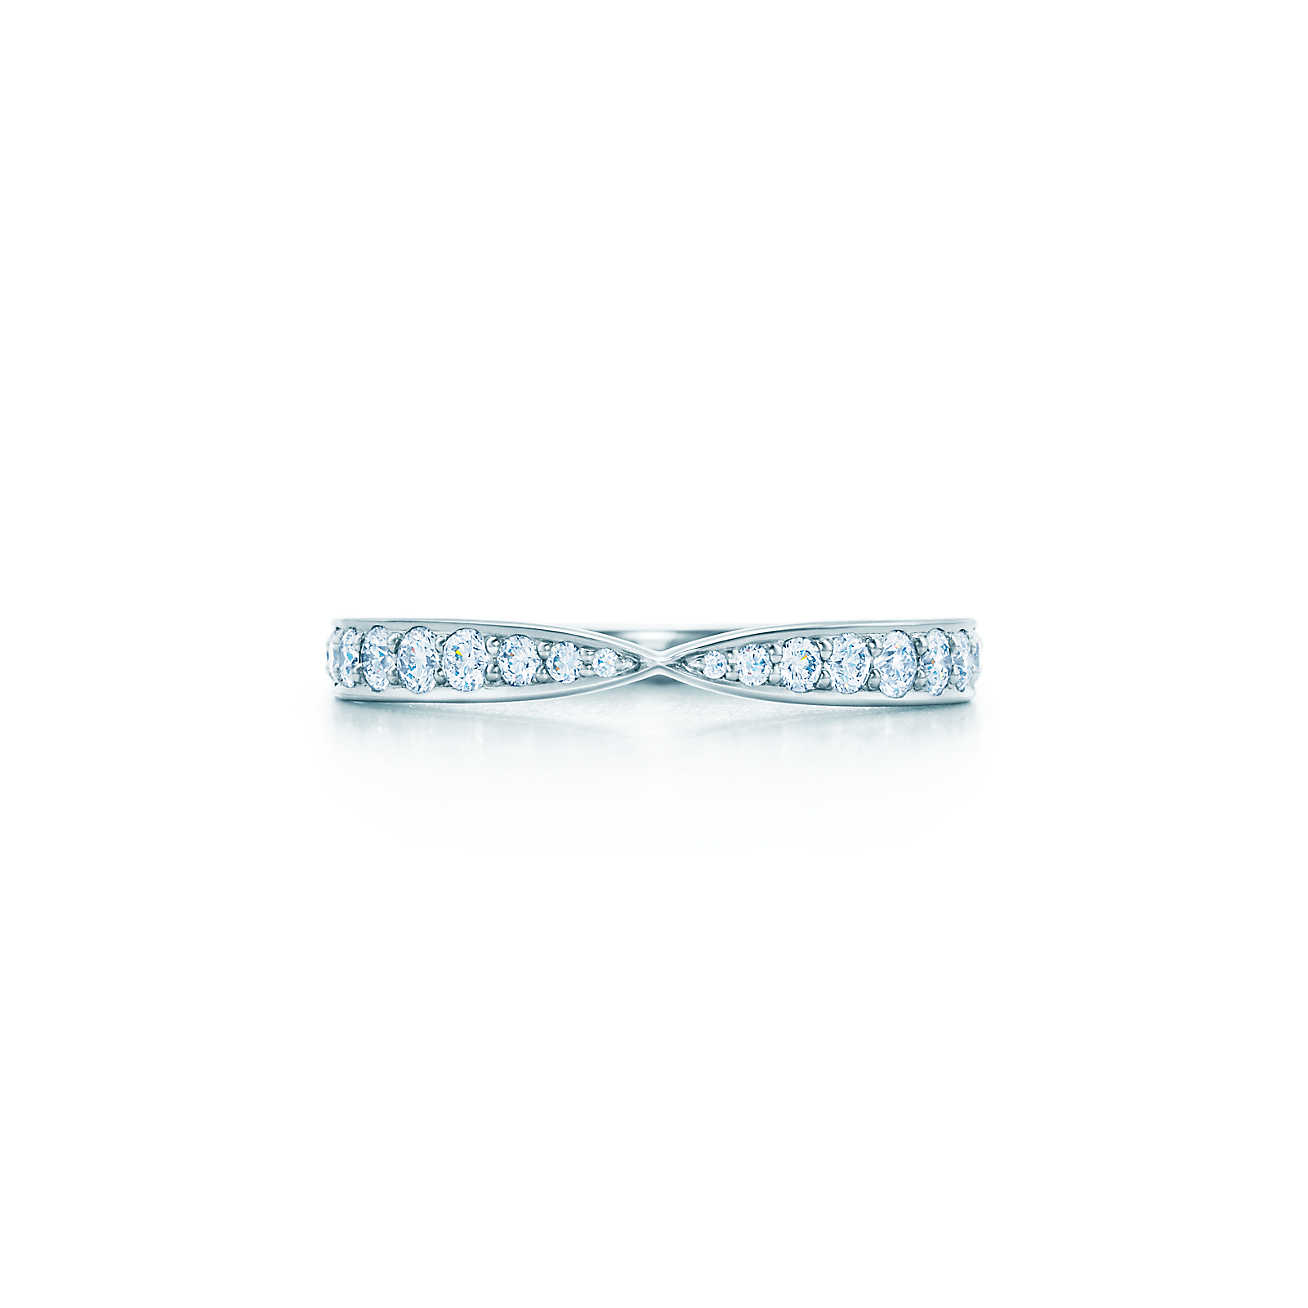 18ct white gold pinched graduated diamond set wedding ring- FJ8002  ONE WEEK SALE